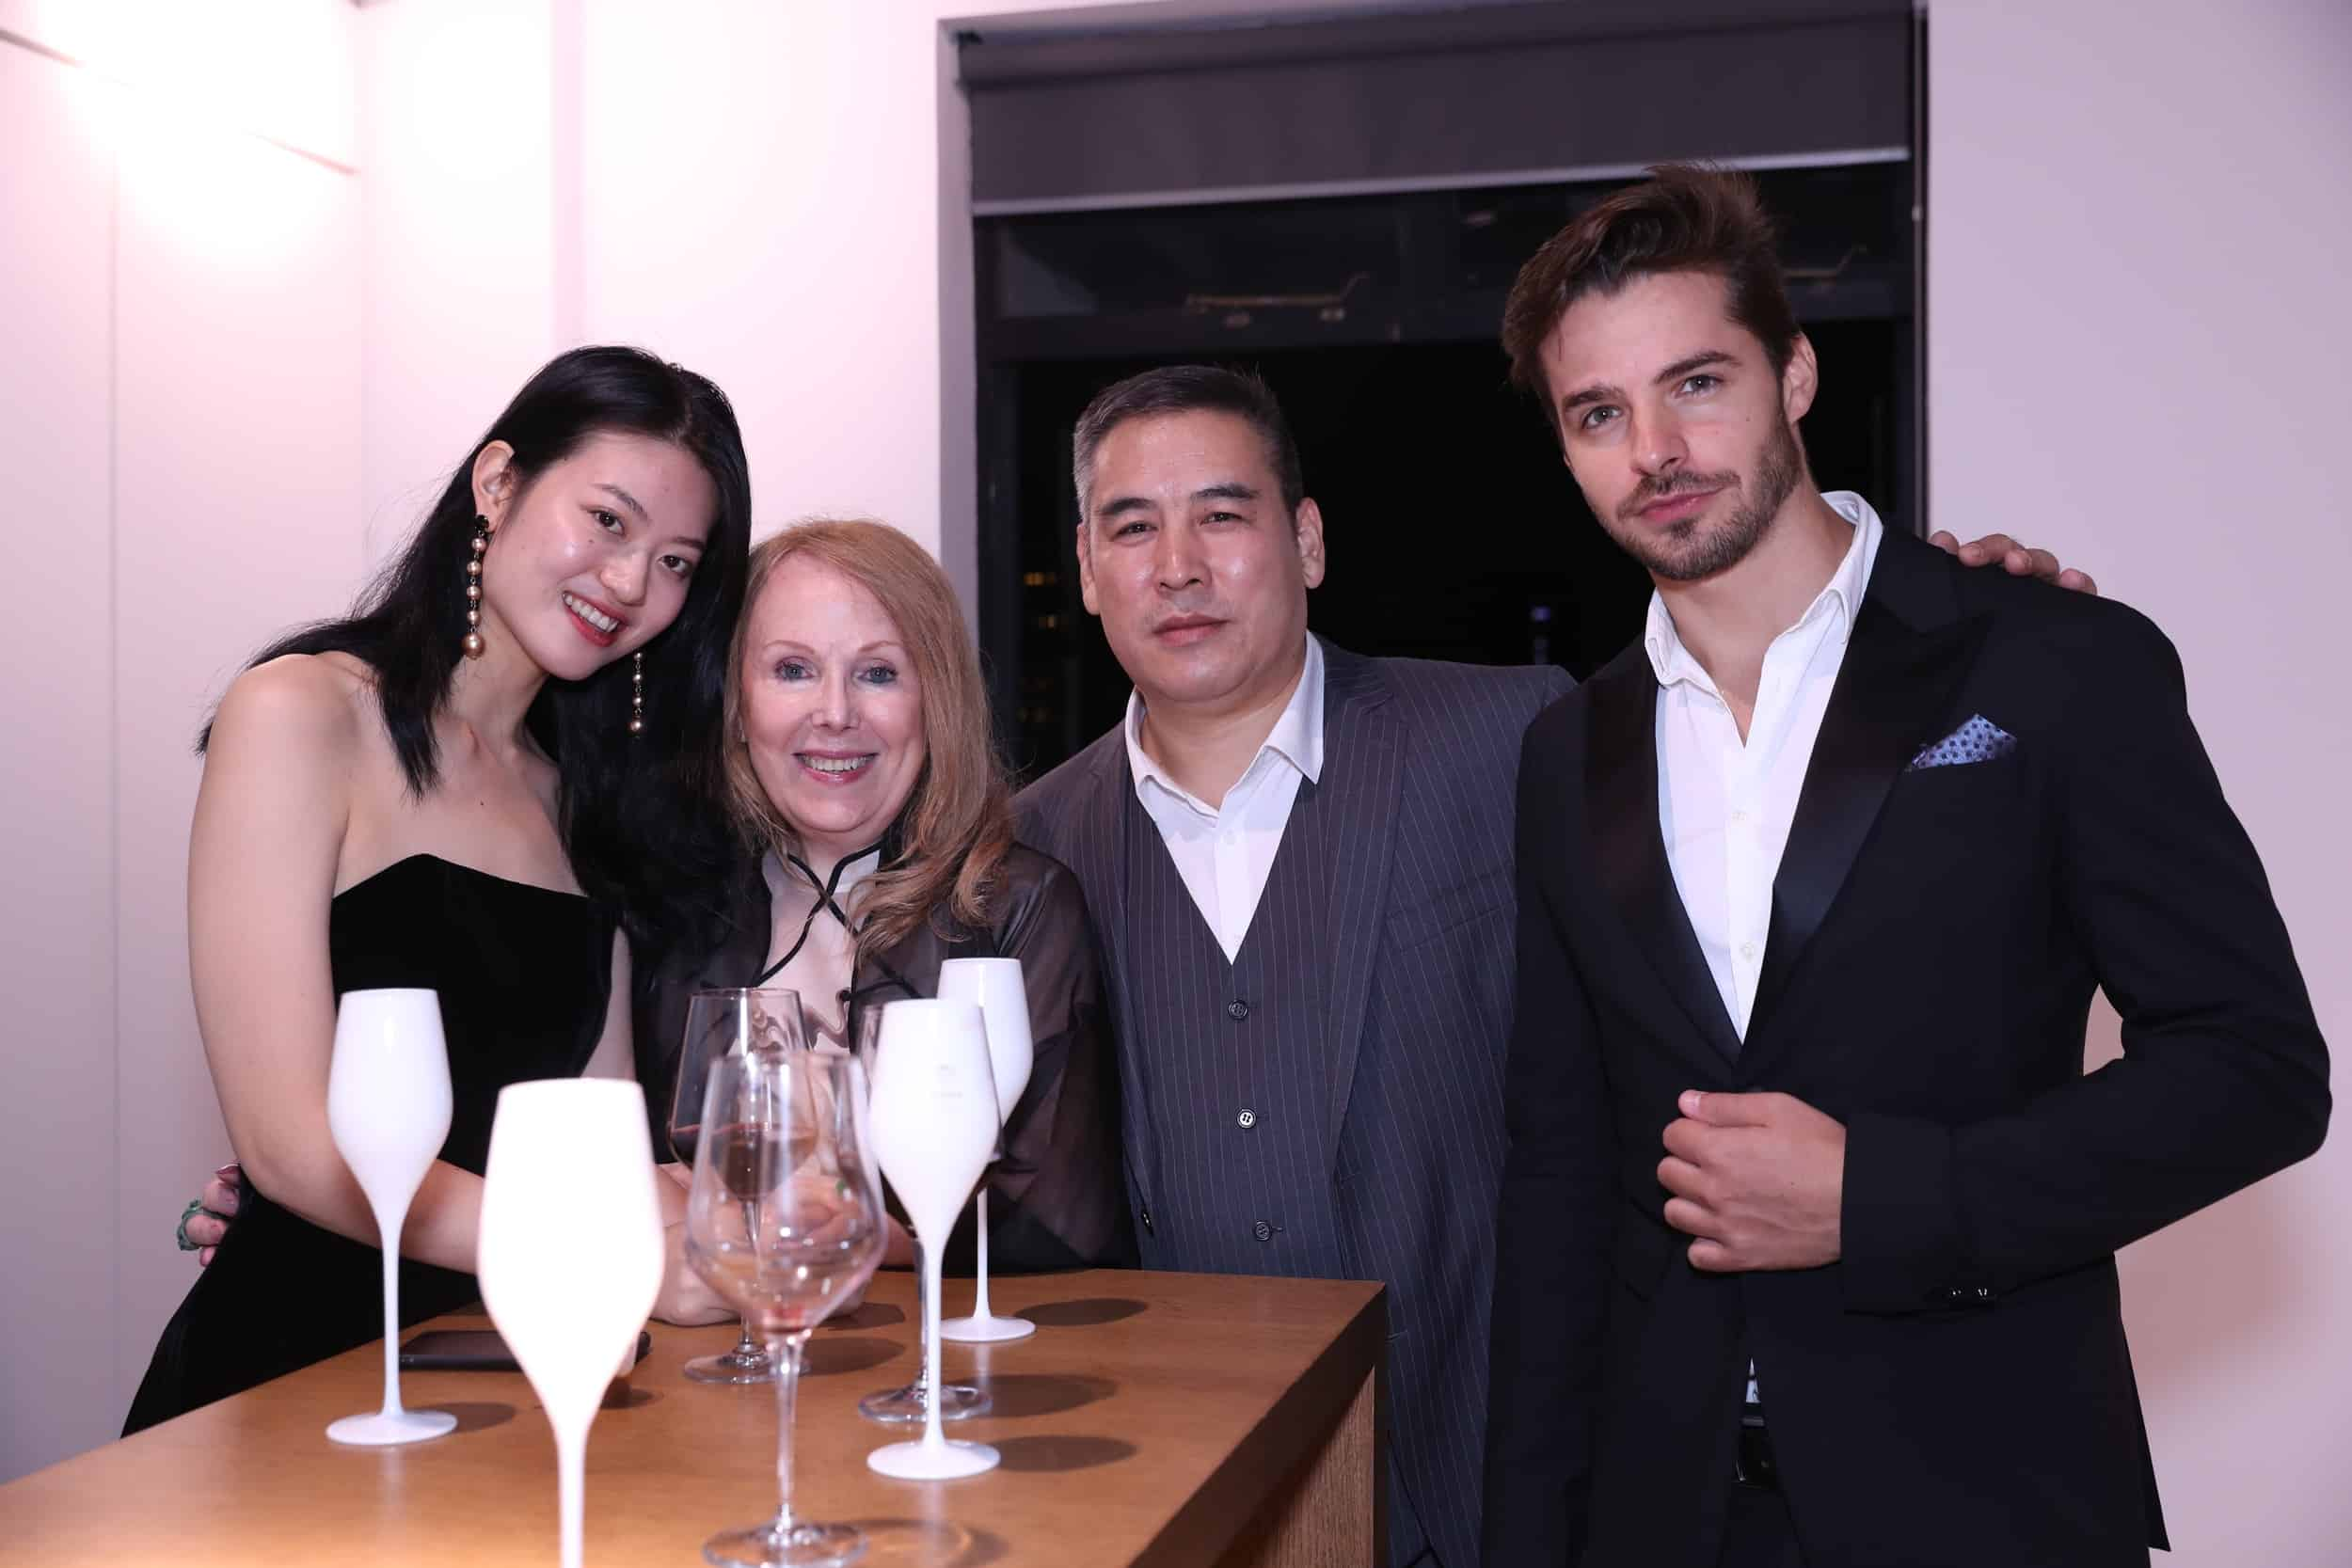 tribe-mannequins-shanghai-guests-32